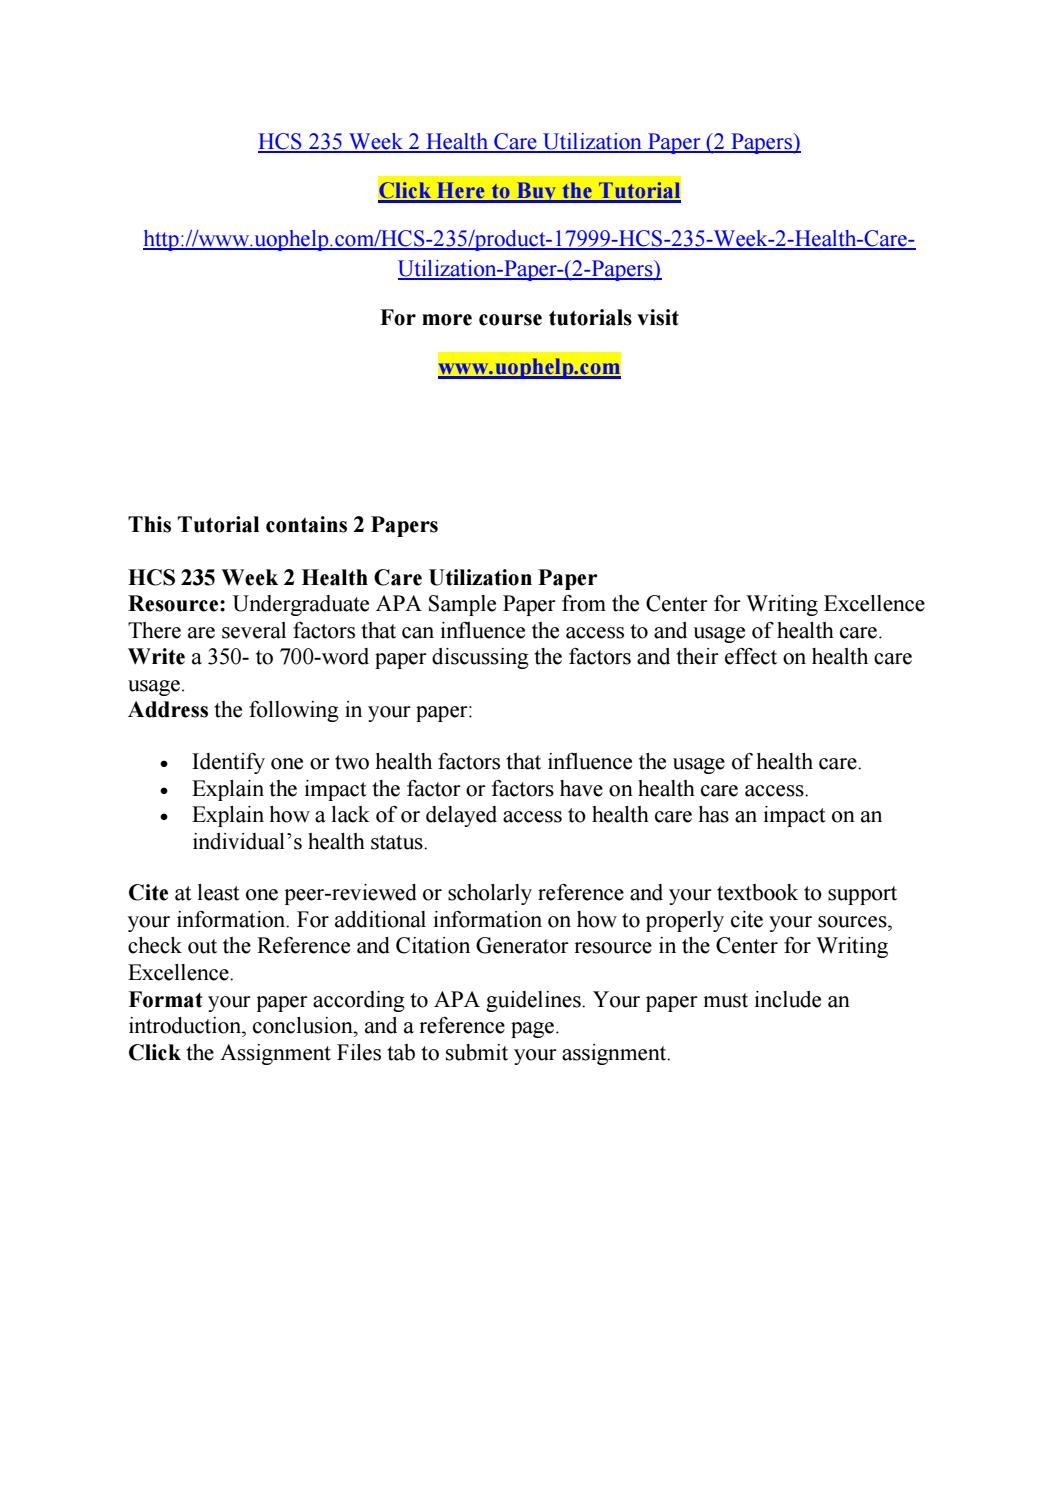 Hcs 235 week 2 health care utilization paper (2 papers) by